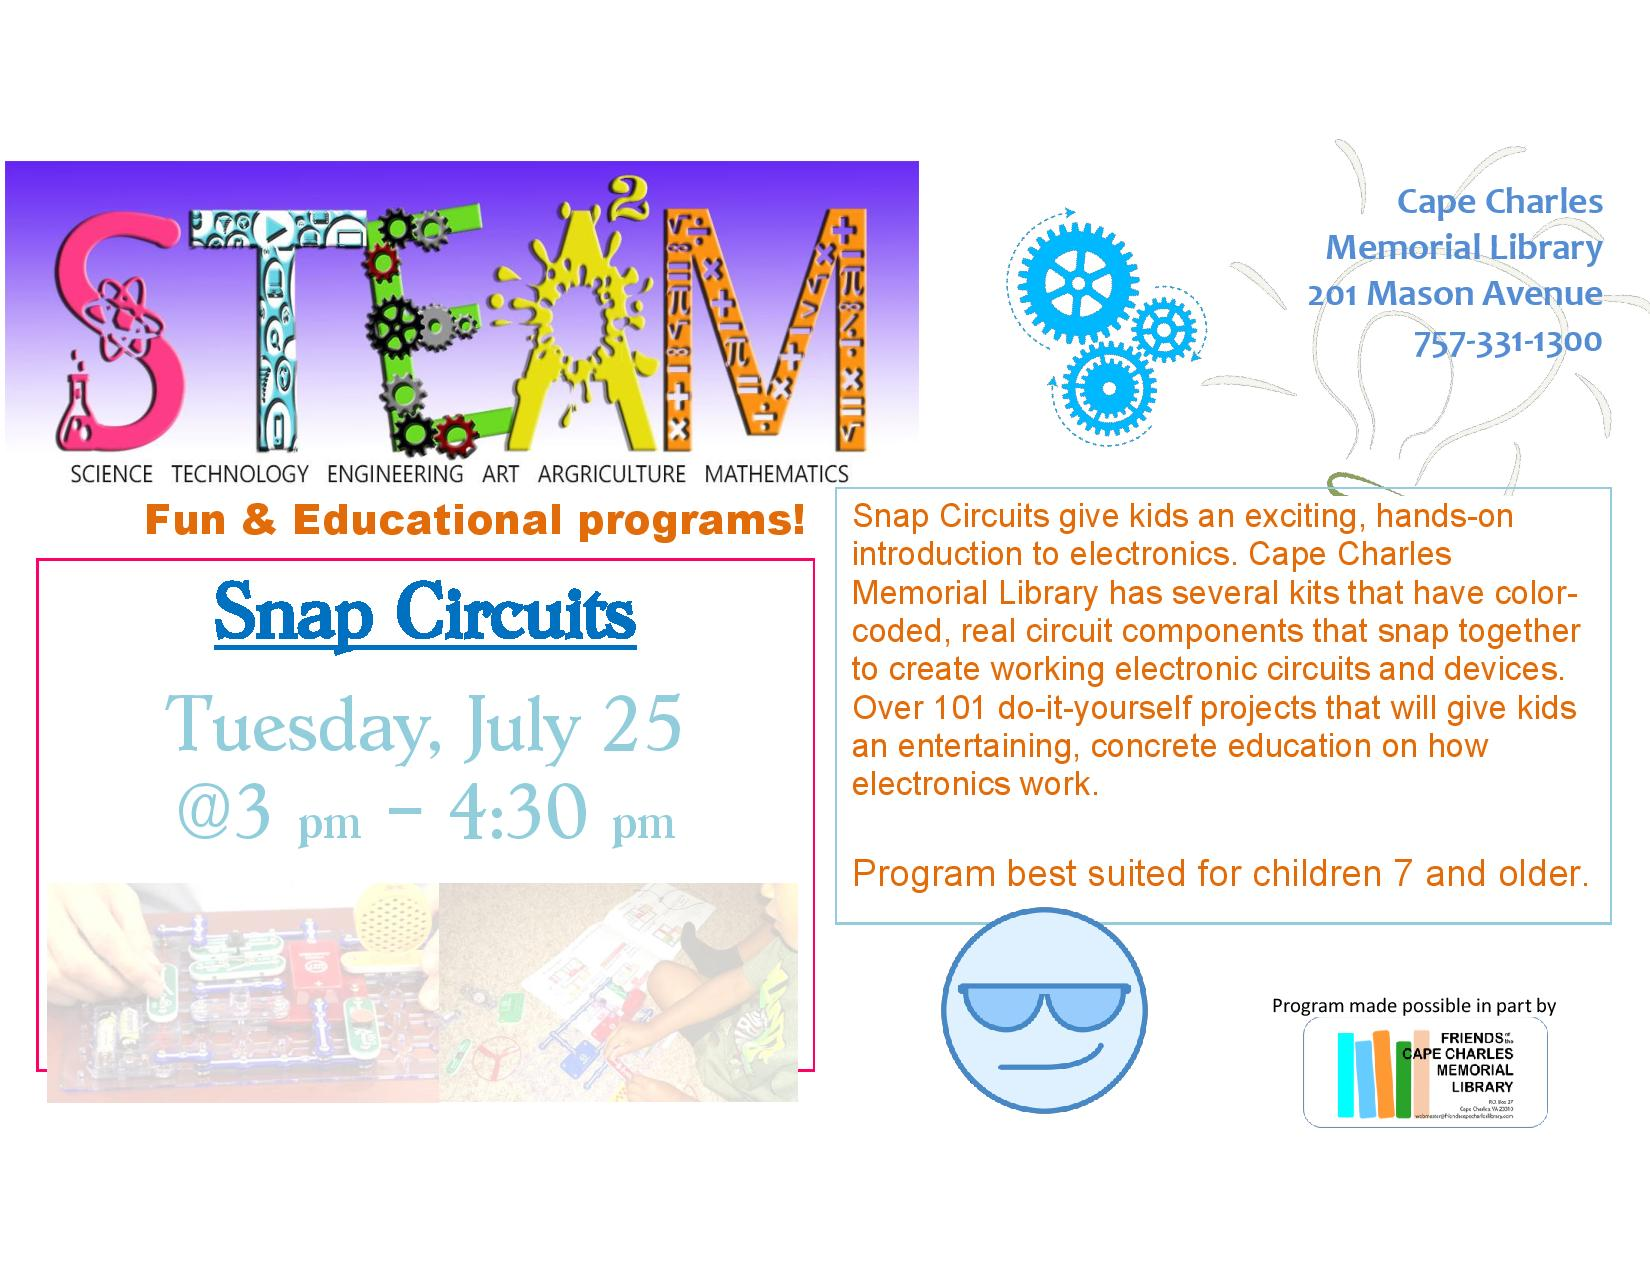 STEAM - Snap Circuits @ Cape Charles Memorial Library